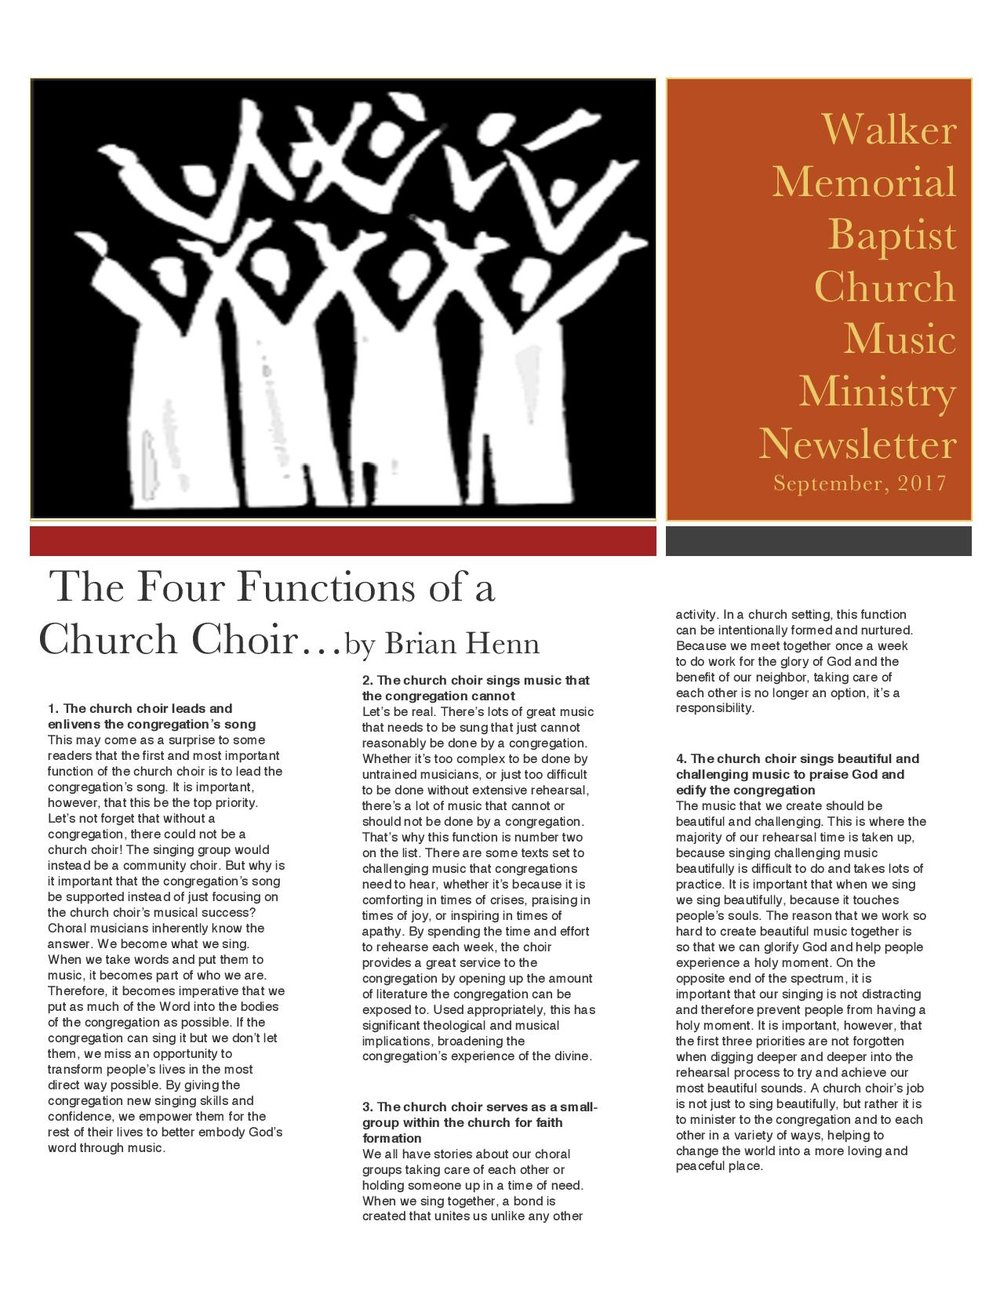 WMBC Music Ministry Newsletter September 2017  (Autosaved)-page-001.jpg